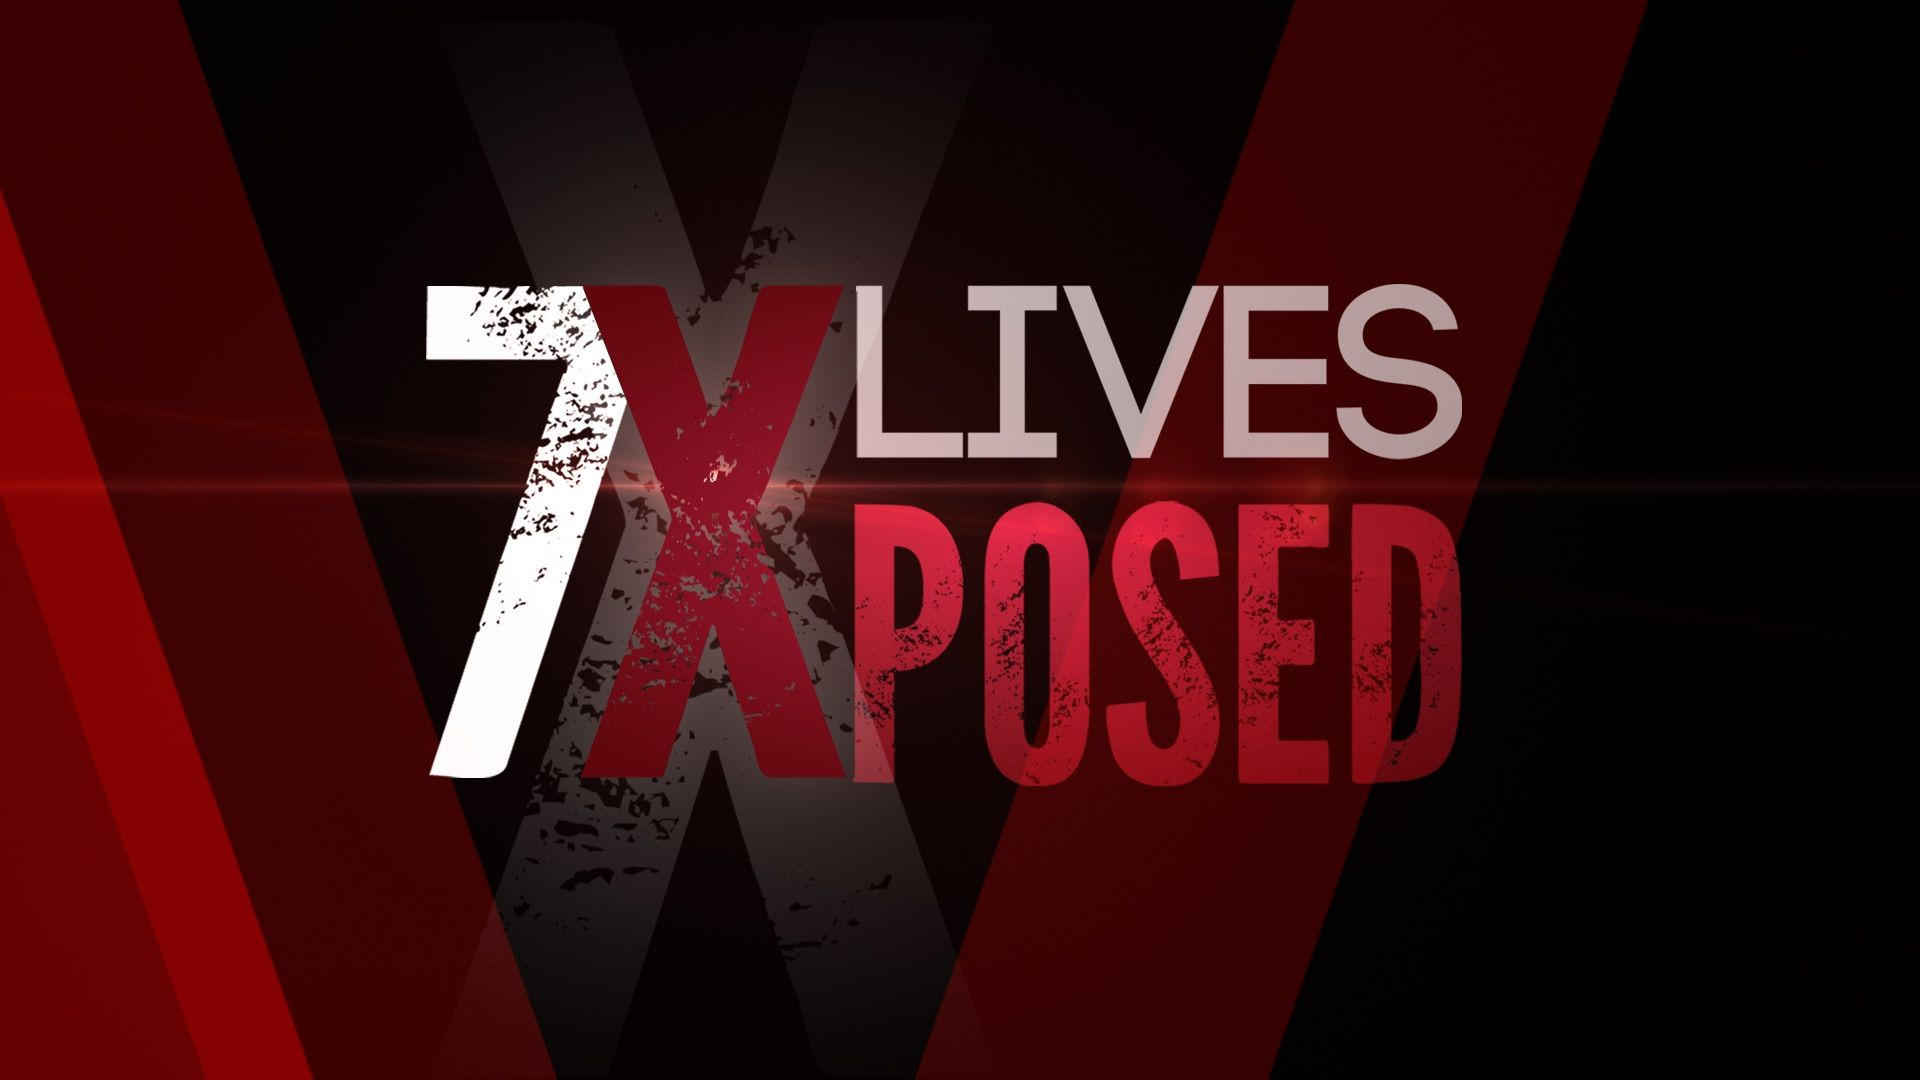 Watch 7 lives xposed online megavideo